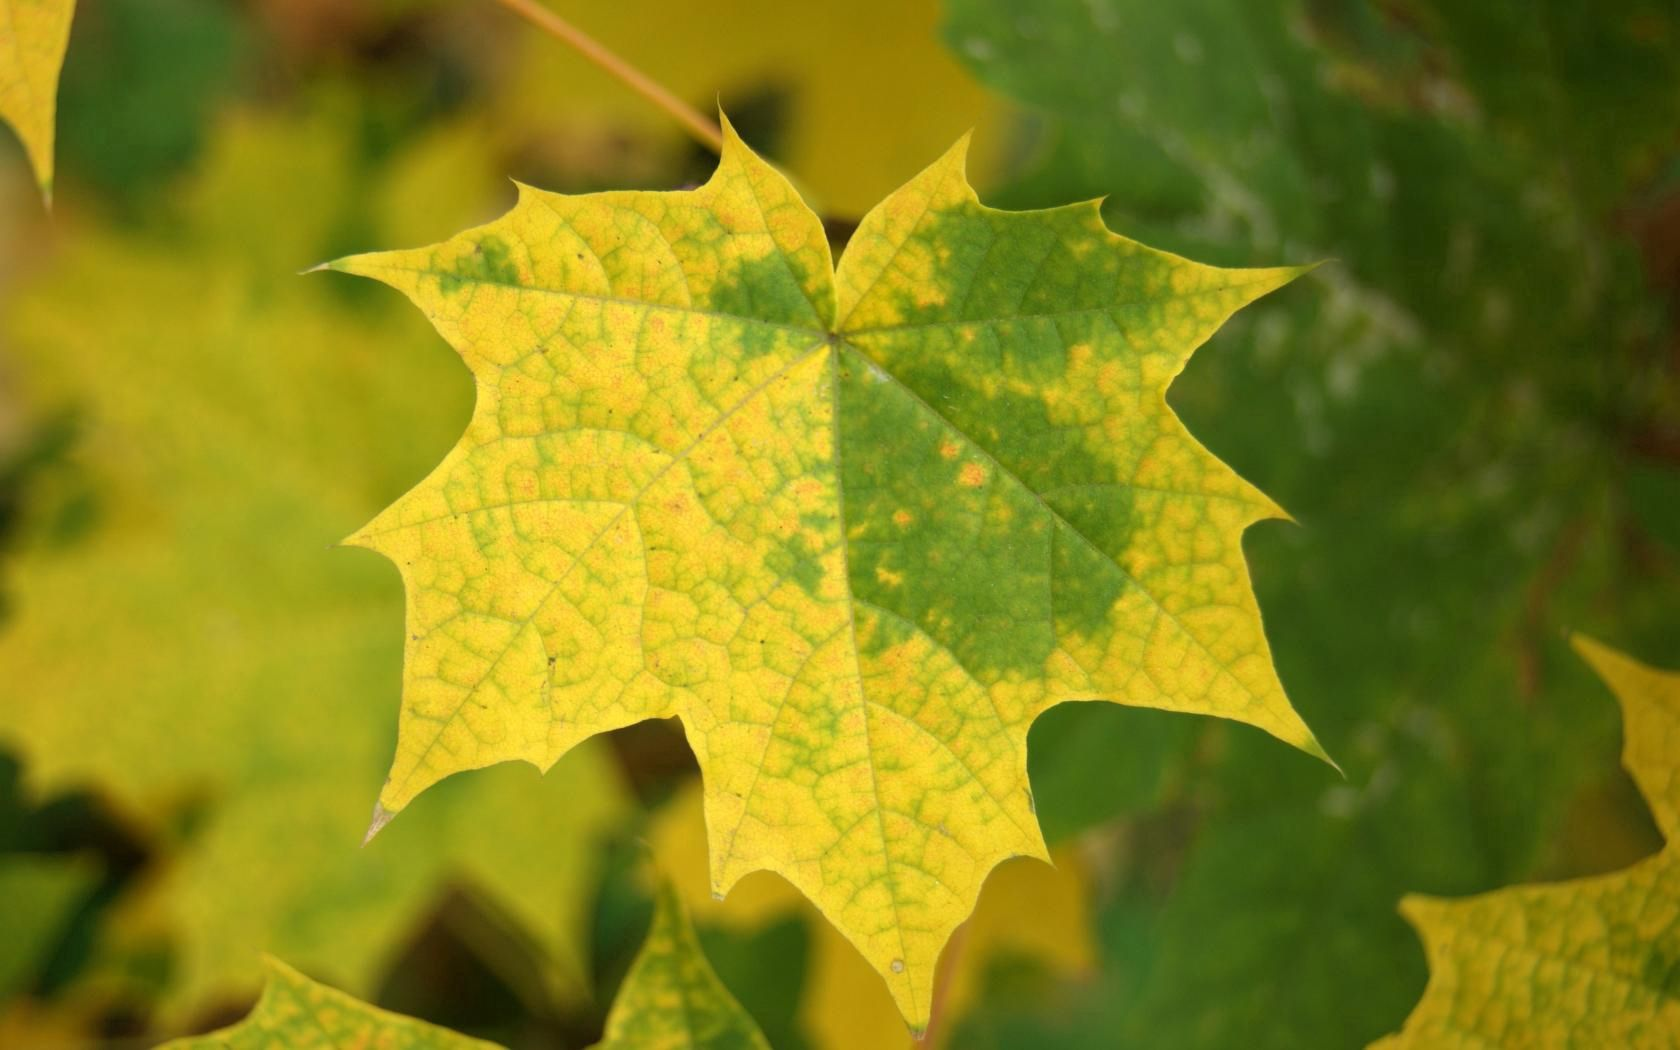 112028 download wallpaper Macro, Leaves, Maple, Autumn, Fallen screensavers and pictures for free